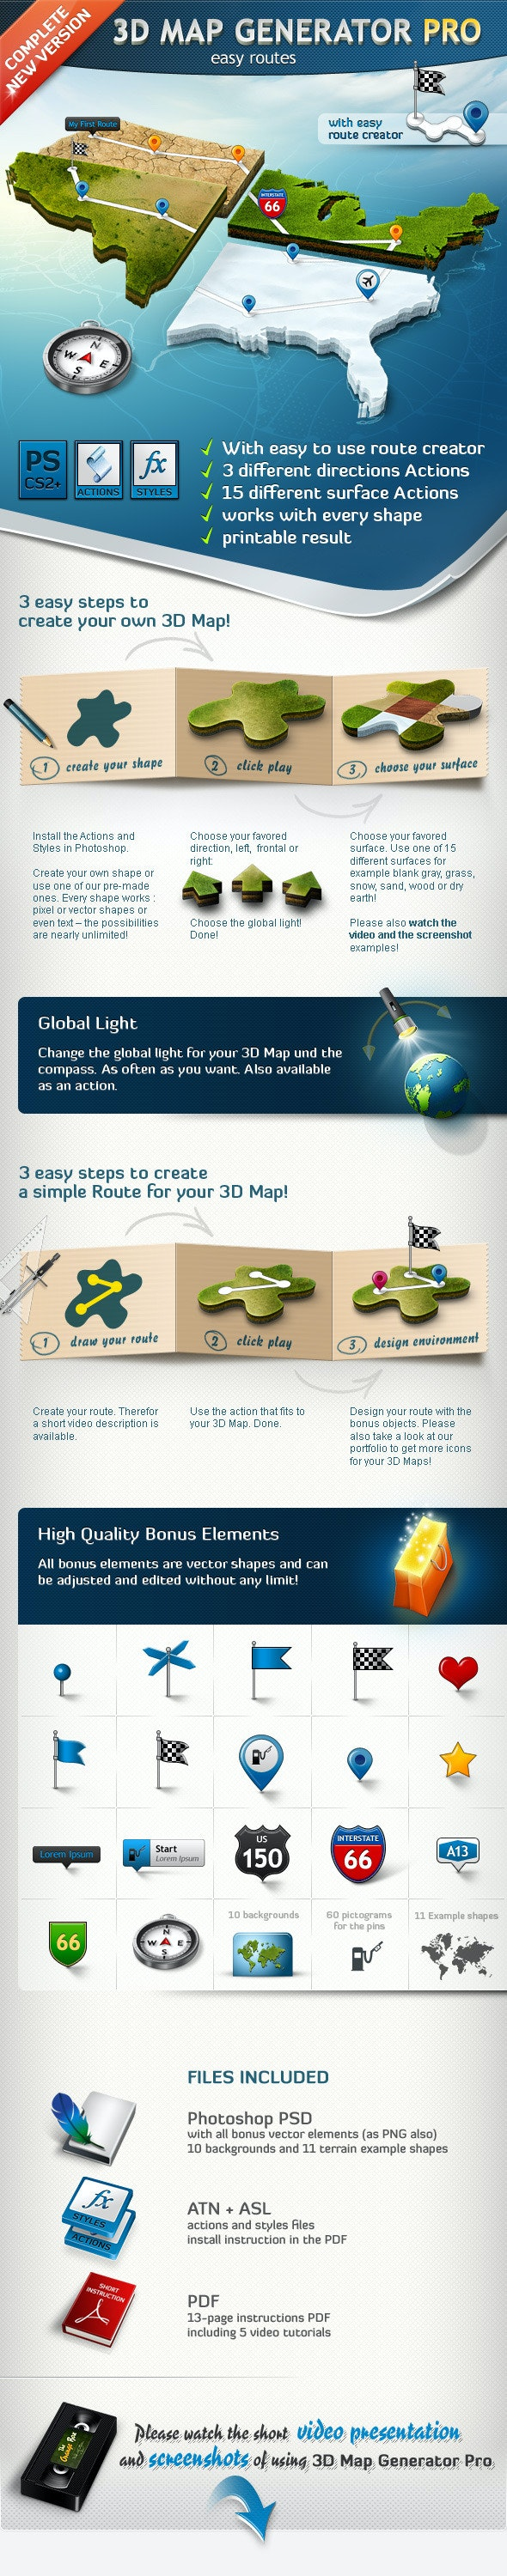 3D Map Generator Pro – Easy Routes - Utilities Actions